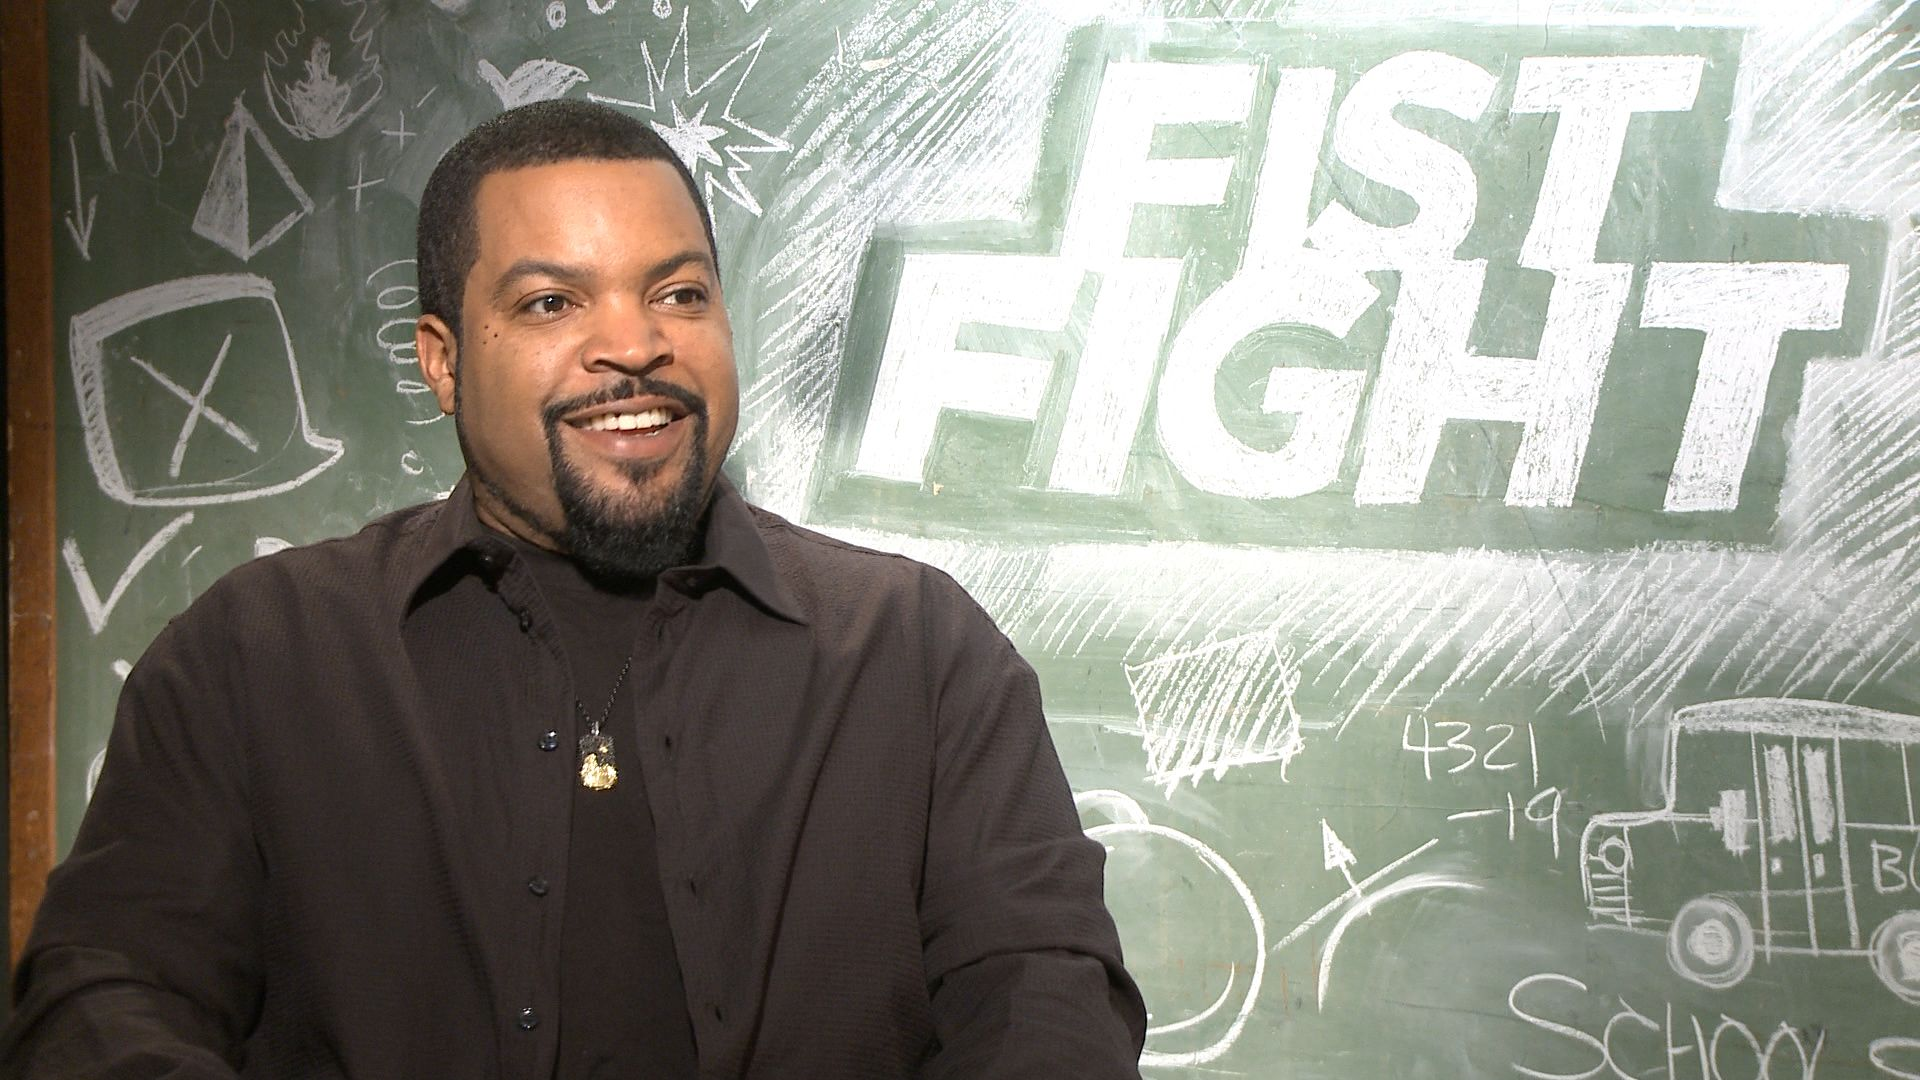 Ice Cube On Fist Fight And His Professional Basketball